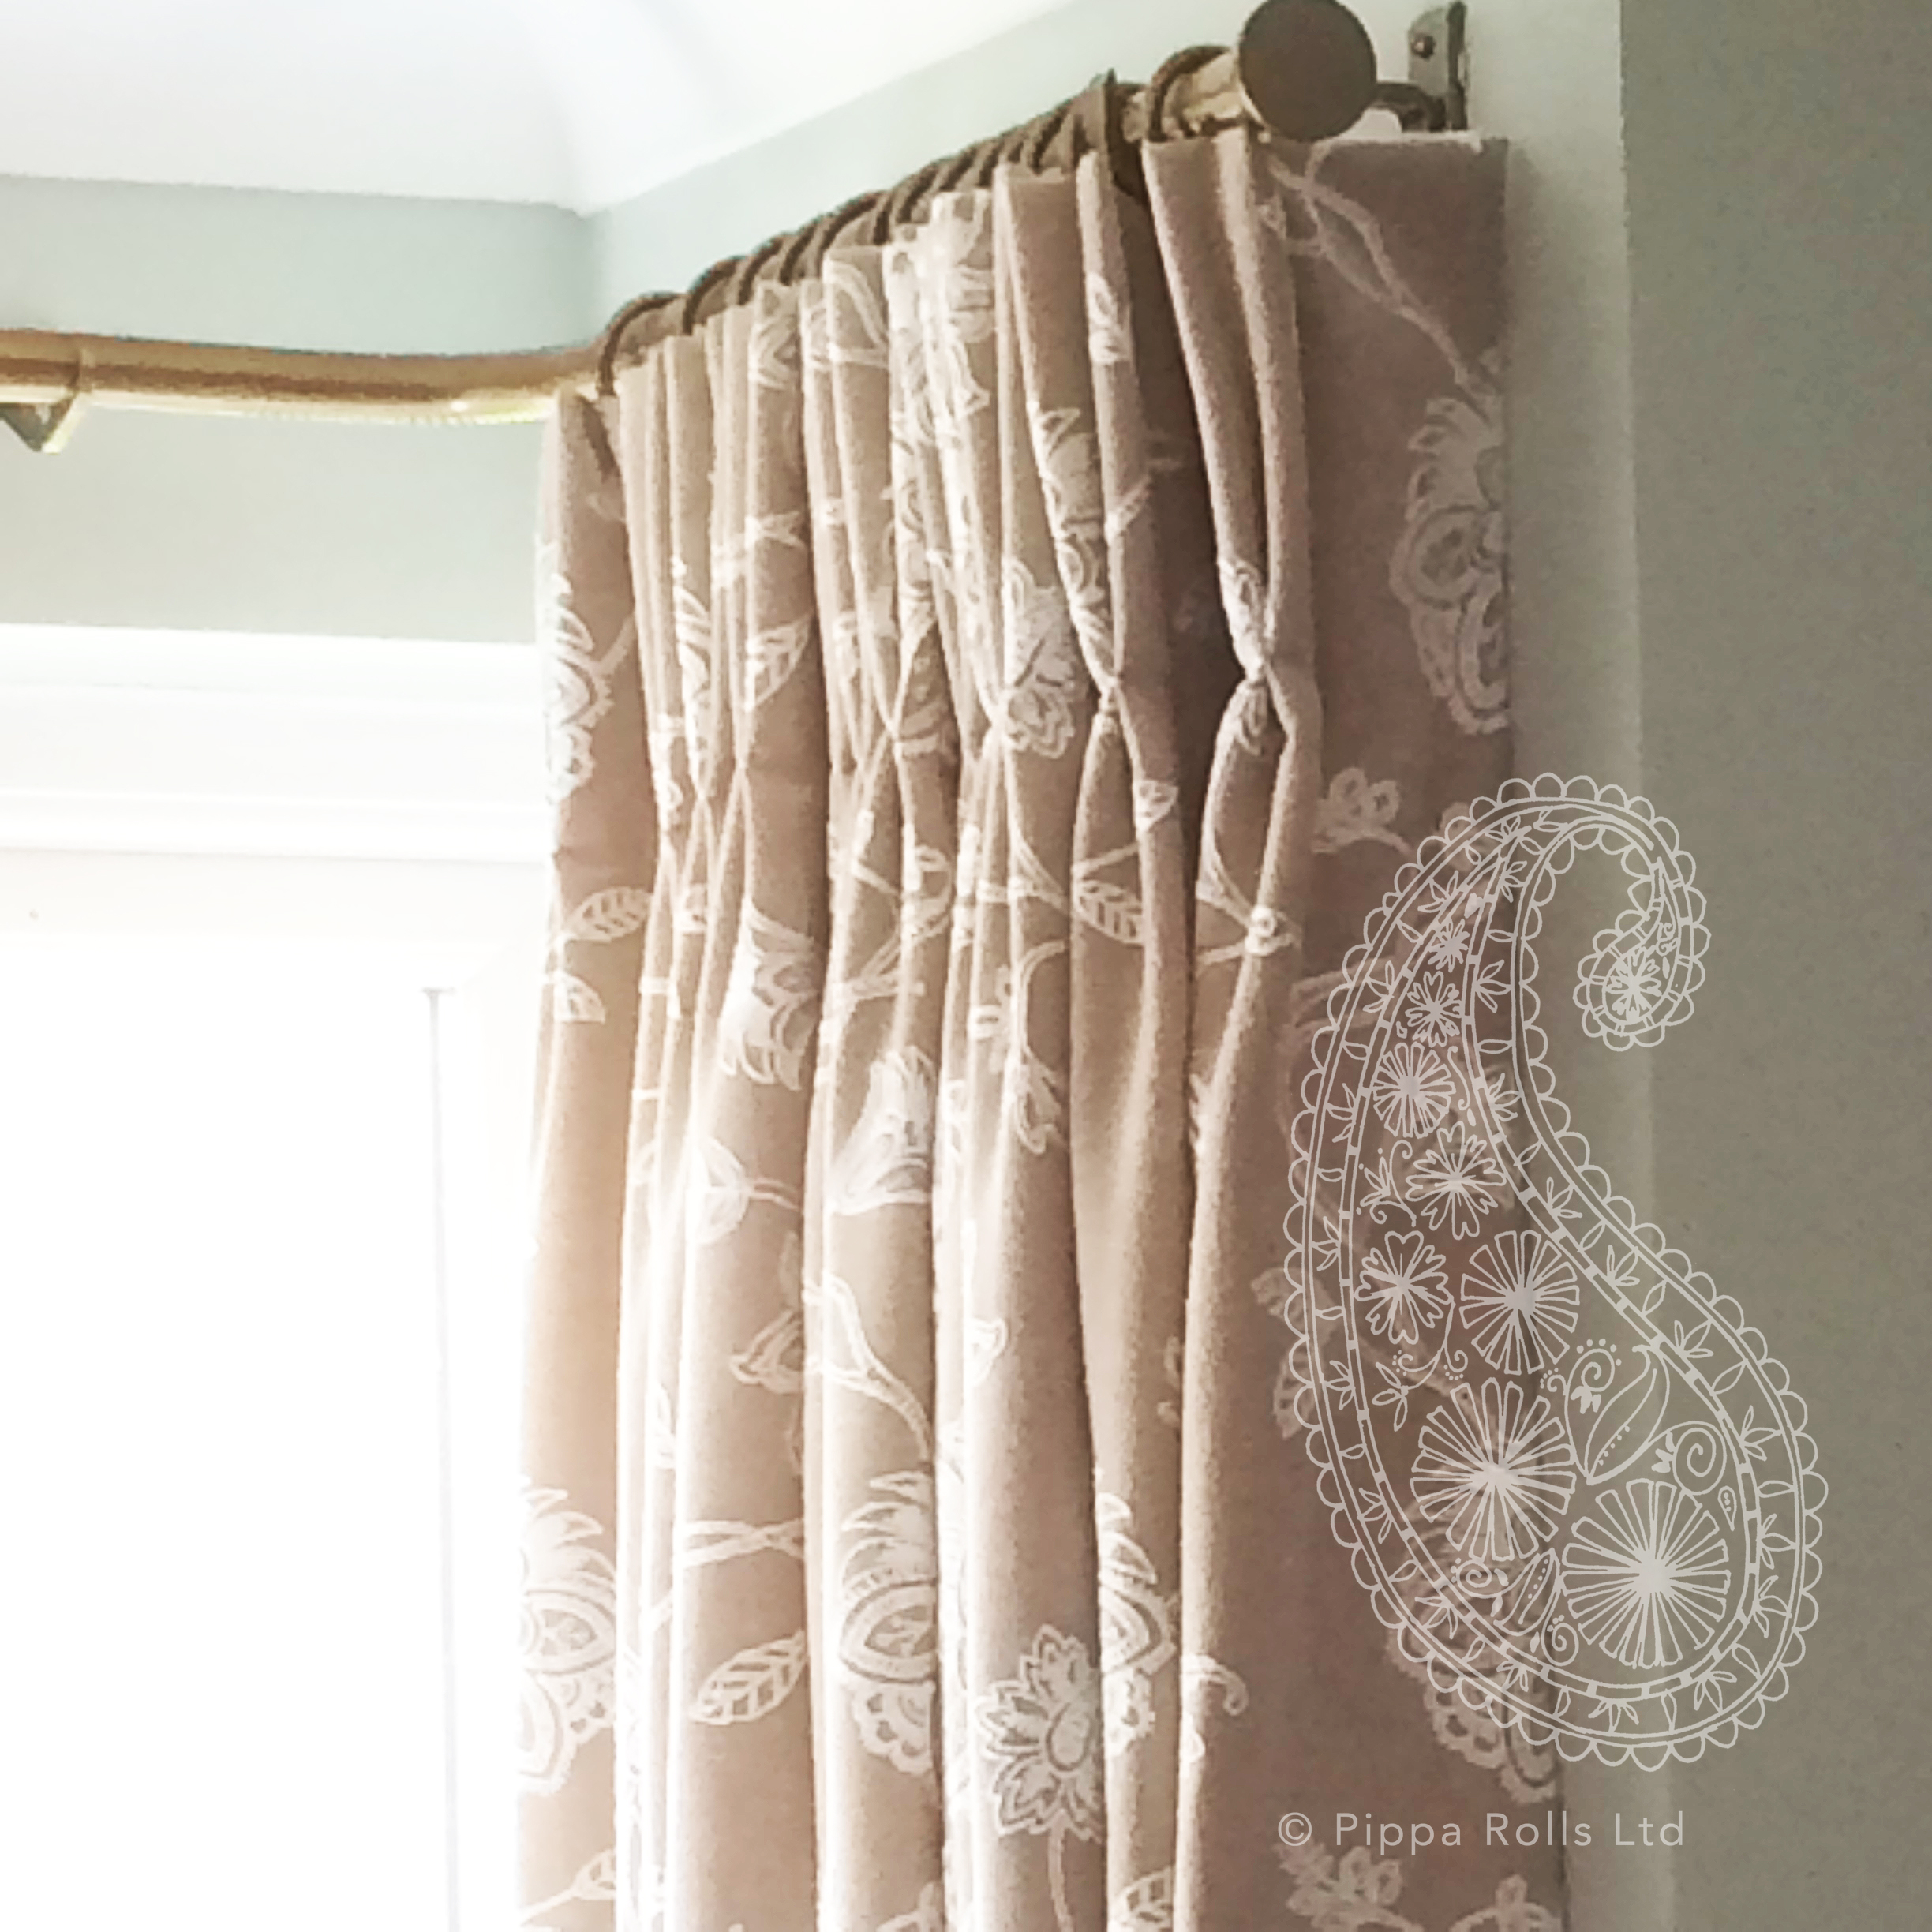 Curtain return detail on bay window Pippa Rolls Limited jpeg.jpg